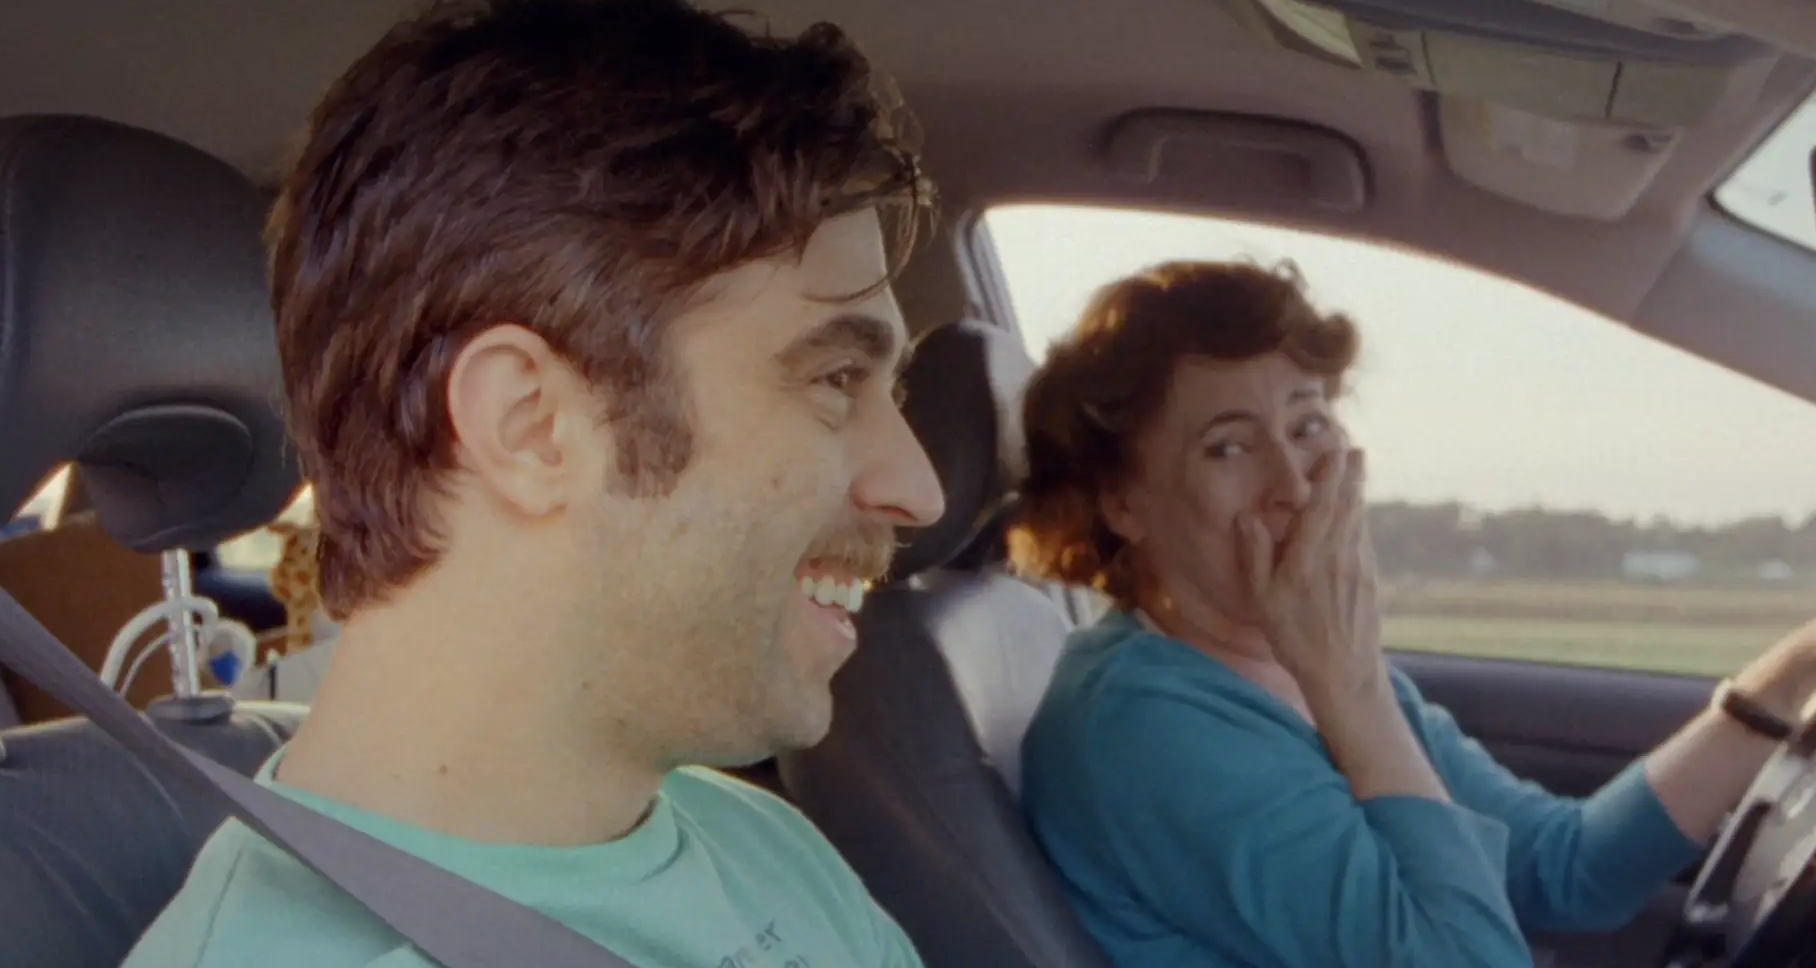 'Cubby' Trailer: A Quirky Queer Coming-of-Age Comedy Featuring Patricia Richardson